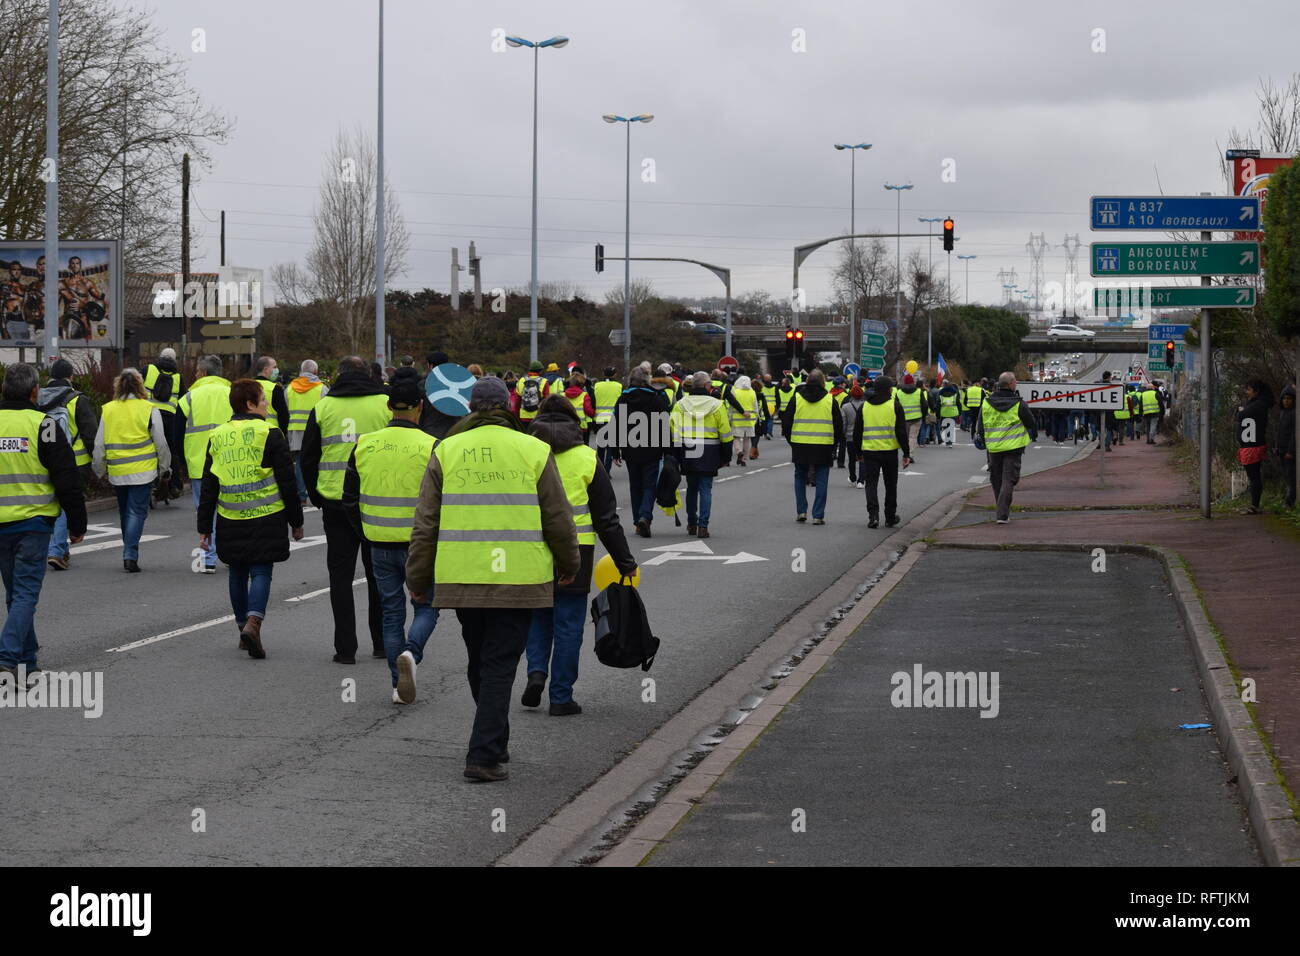 Vivre A La Rochelle yellowvest stock photos & yellowvest stock images - alamy